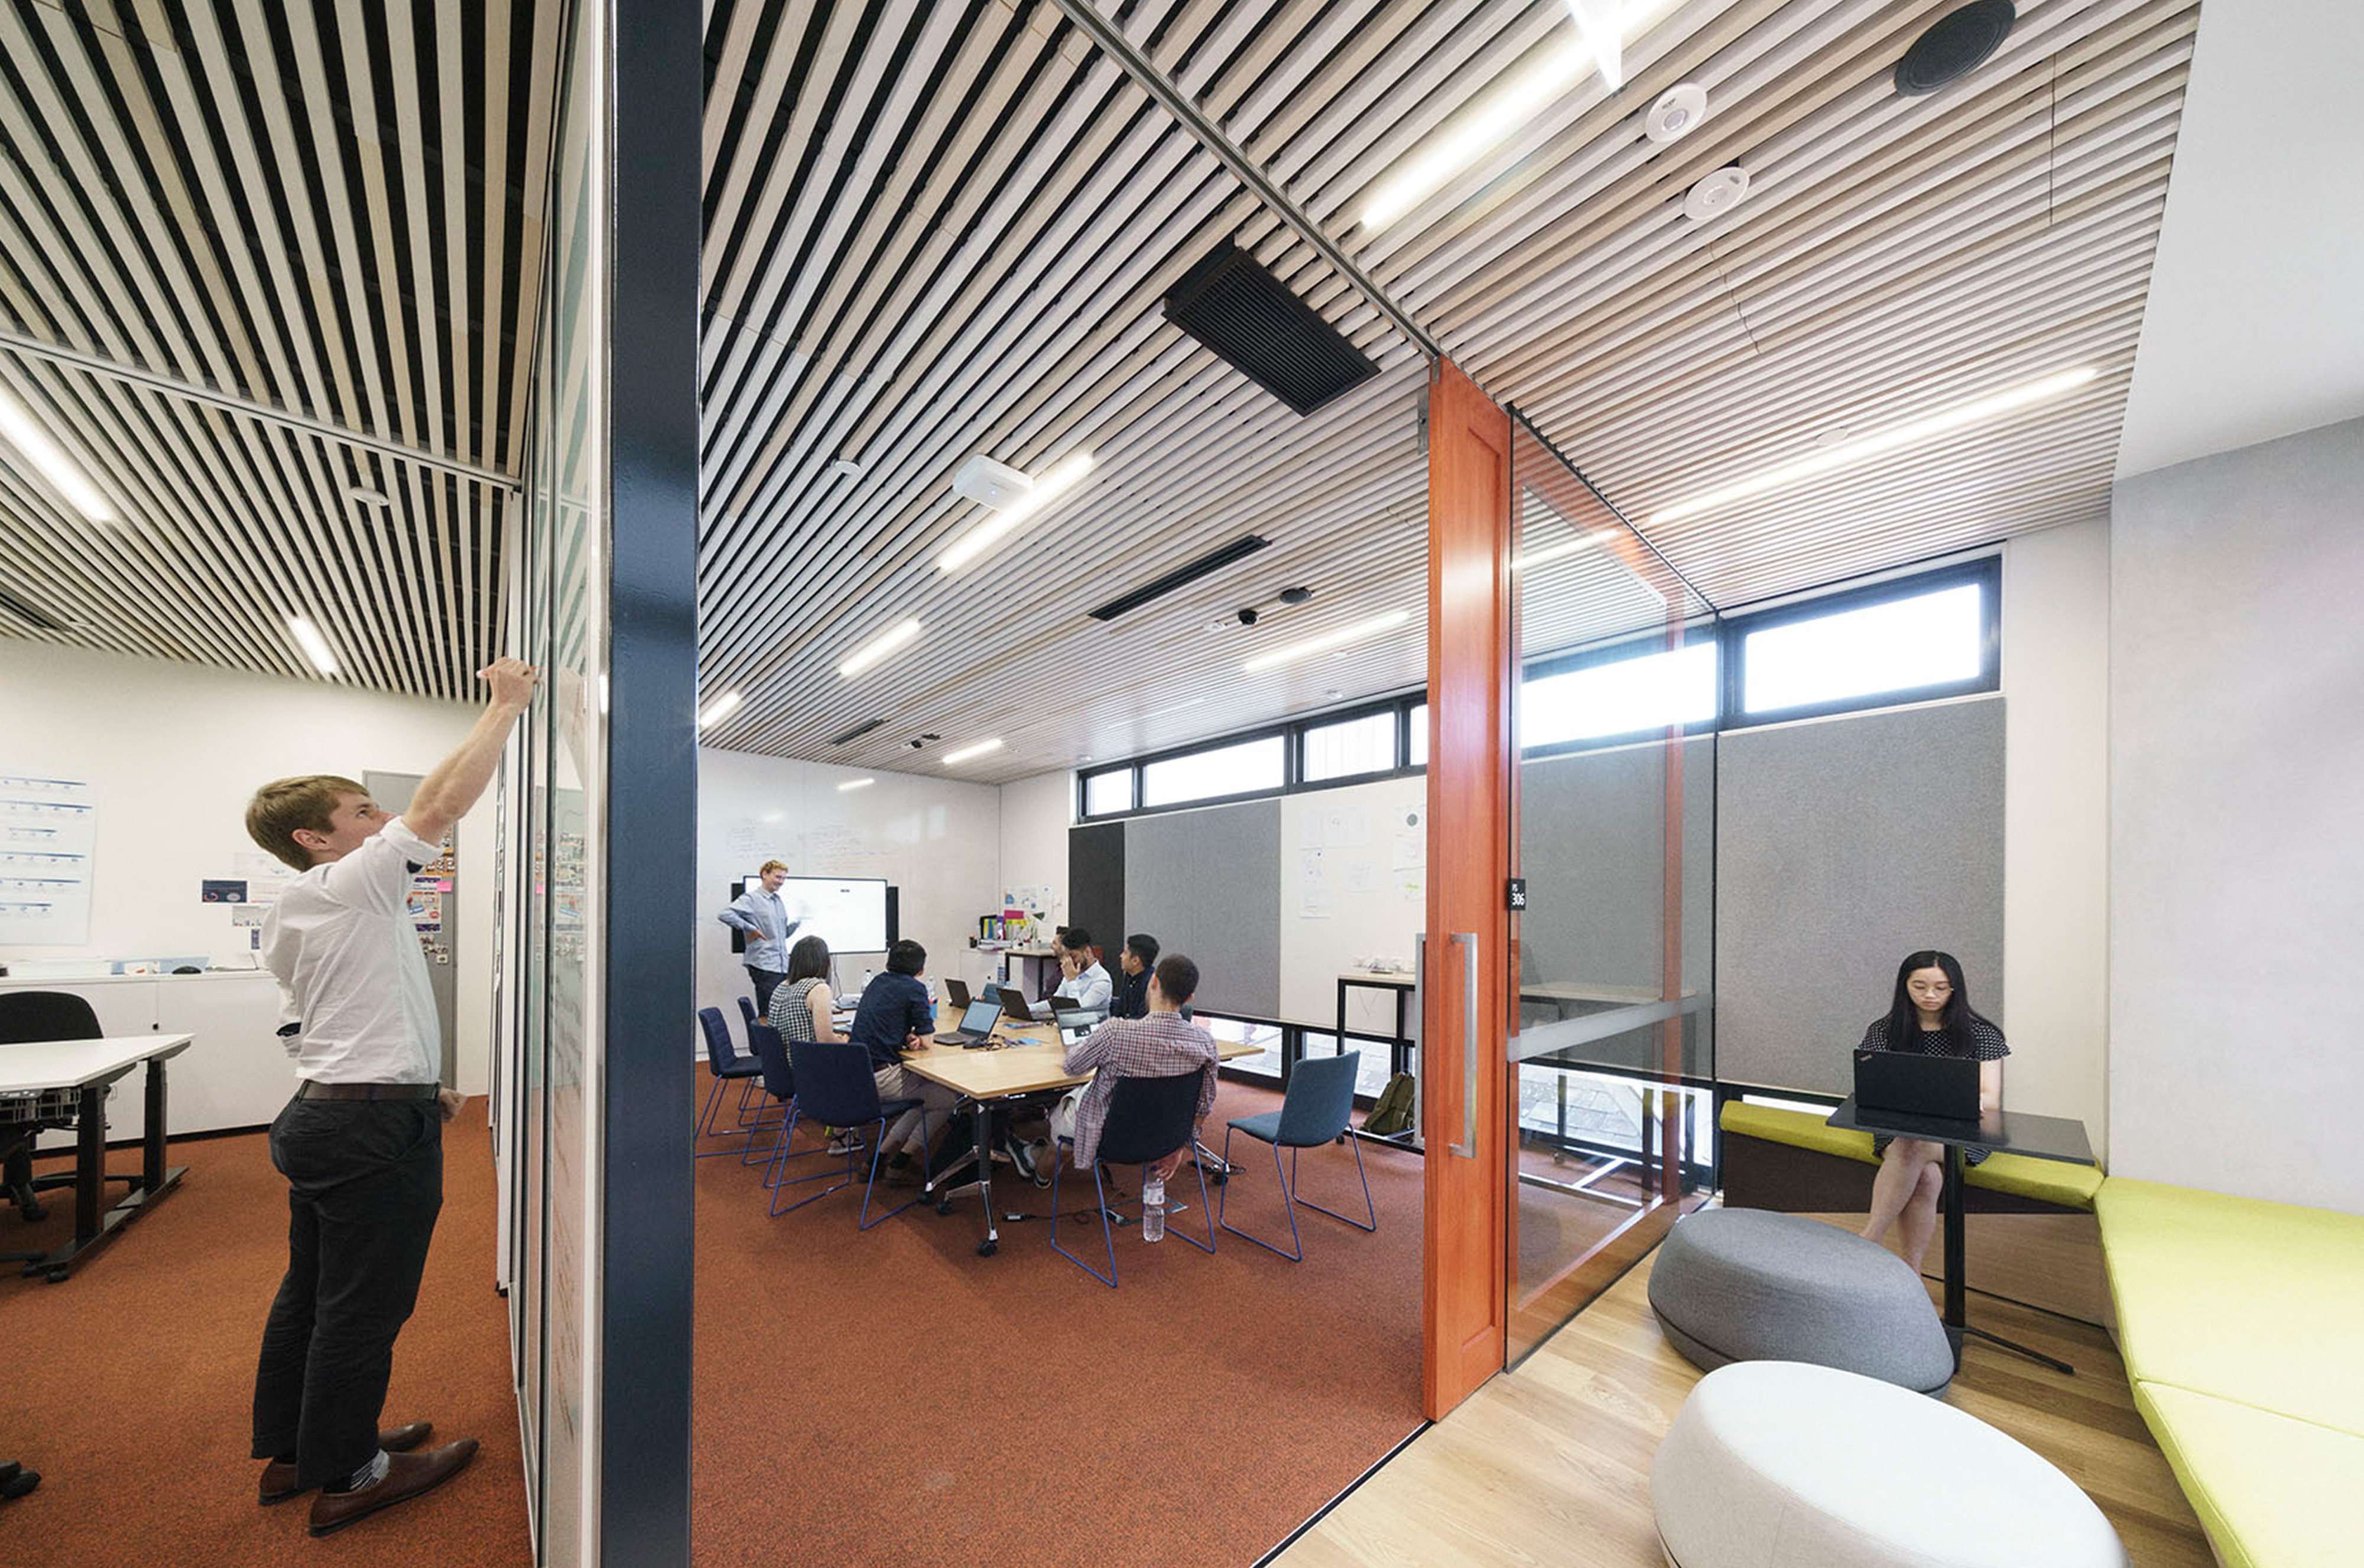 Swinburne University Innovation and Design Hub